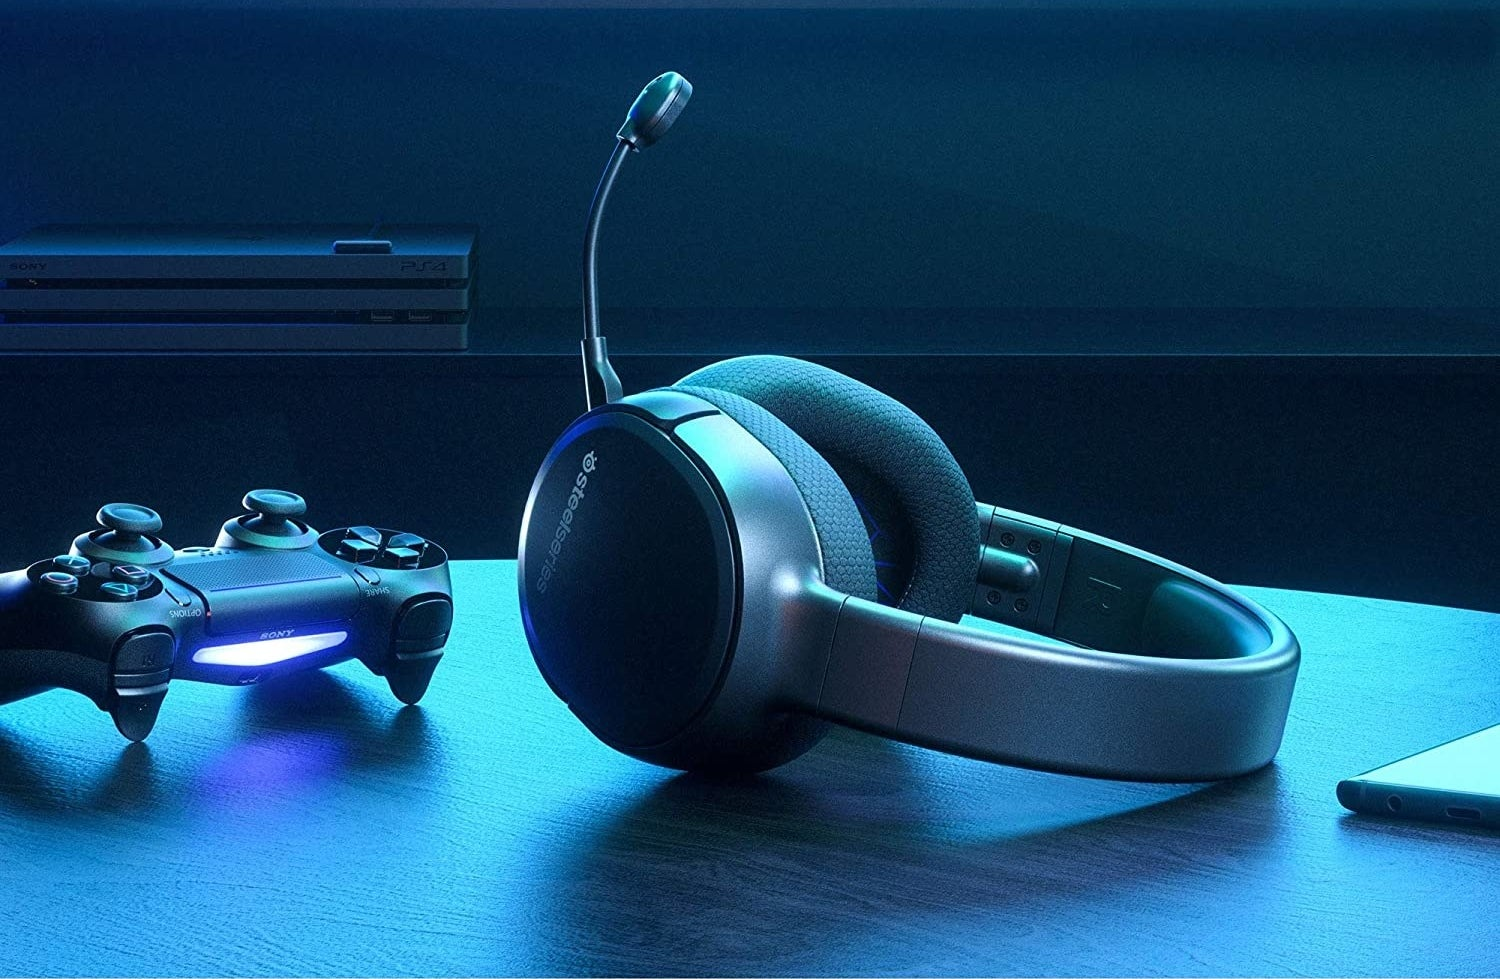 A wireless headset with microphone sits on a table near a game controller